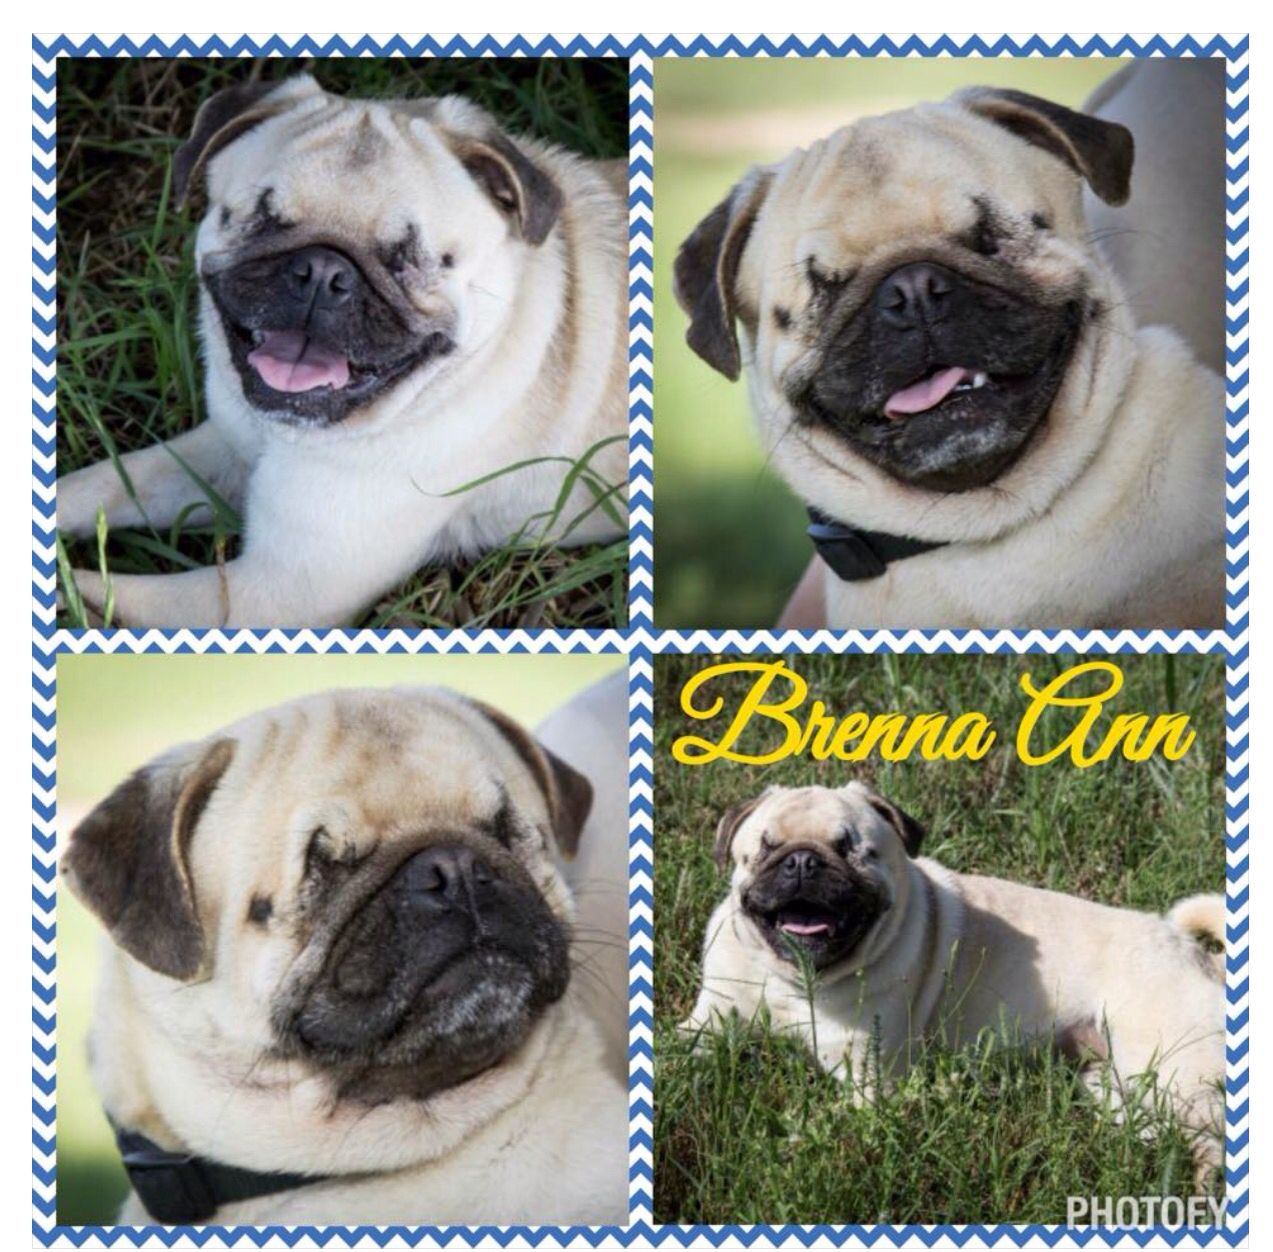 Dfw Pug Rescue Hi I M Brenna Ann And I Am A 1 Year Old Pug Girl